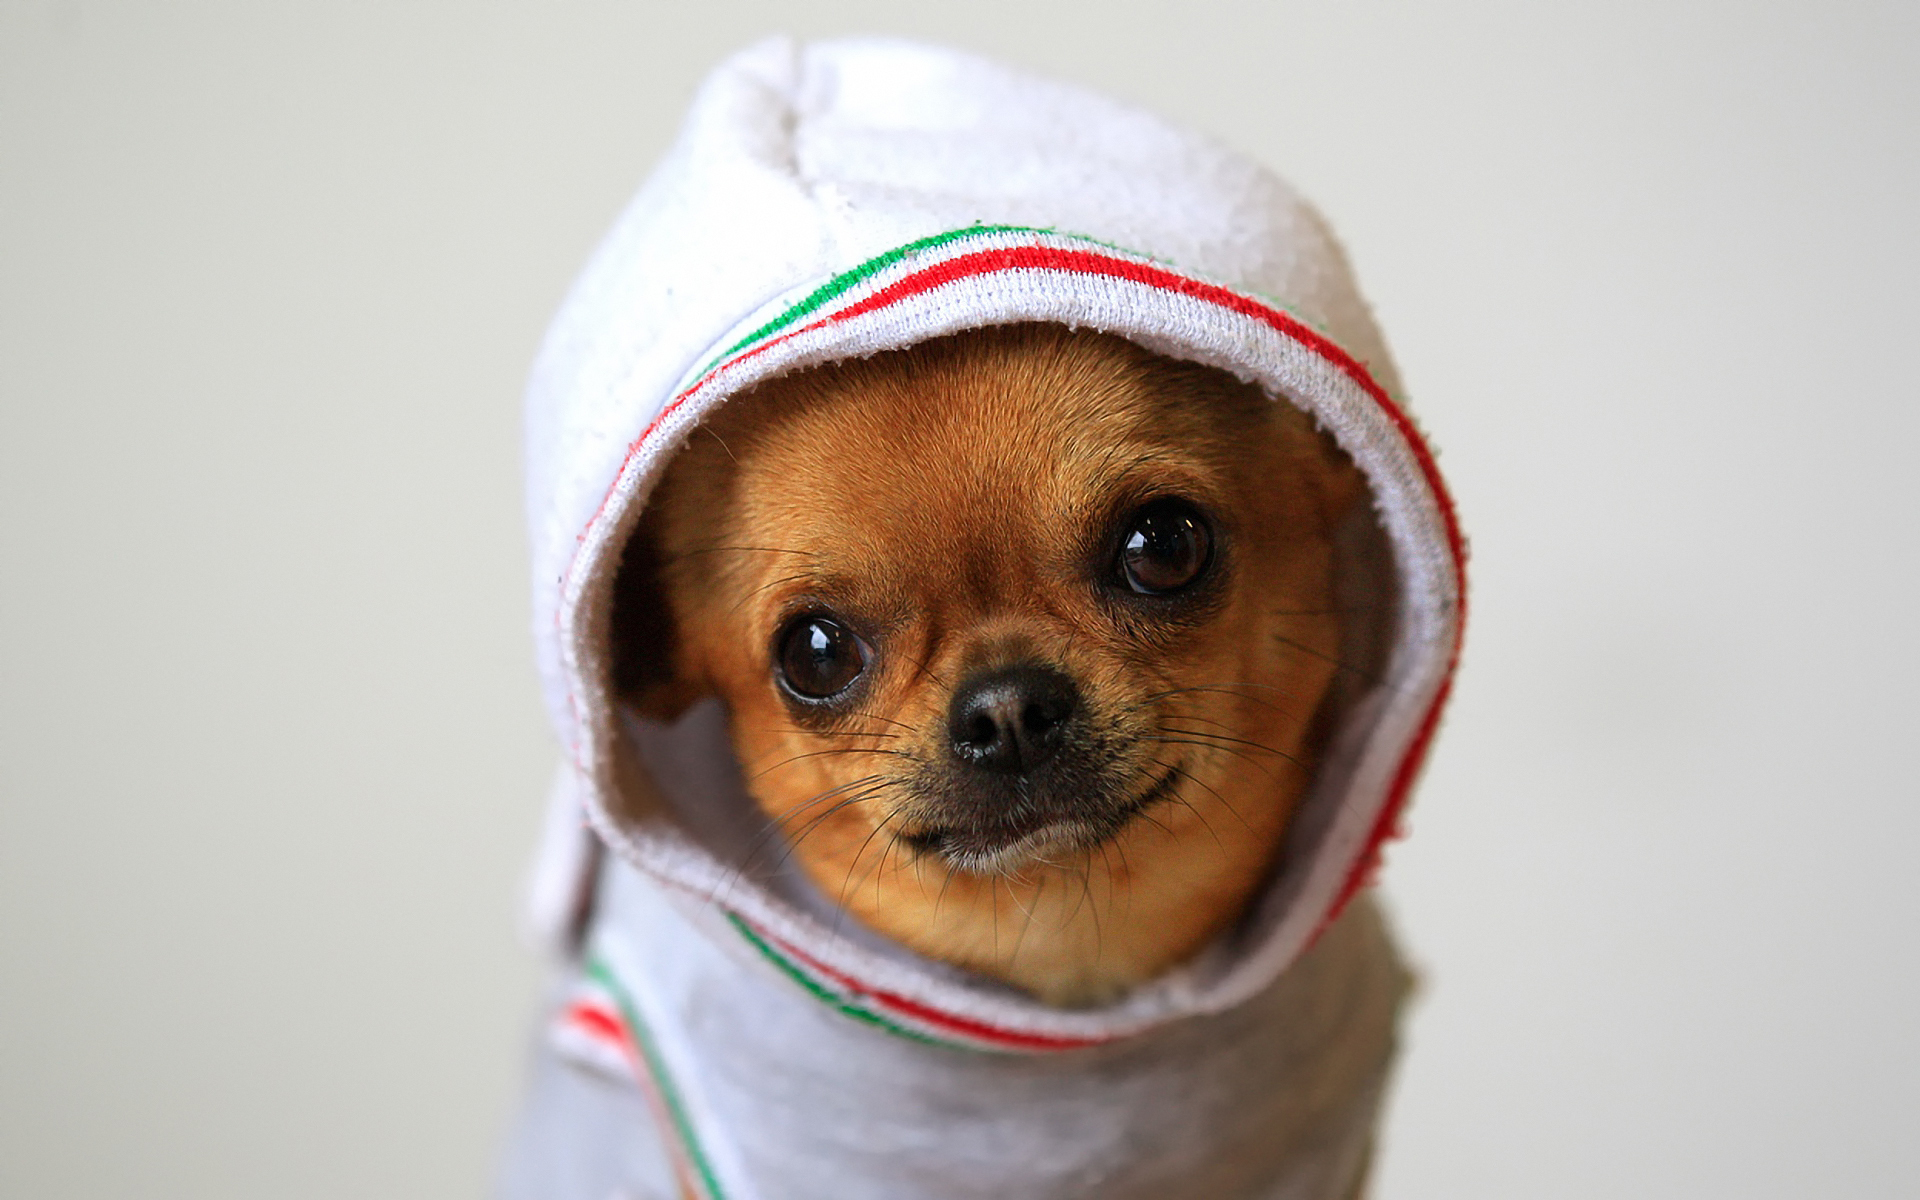 Animals_Dogs_Chihuahuas_in_clothes_033888_